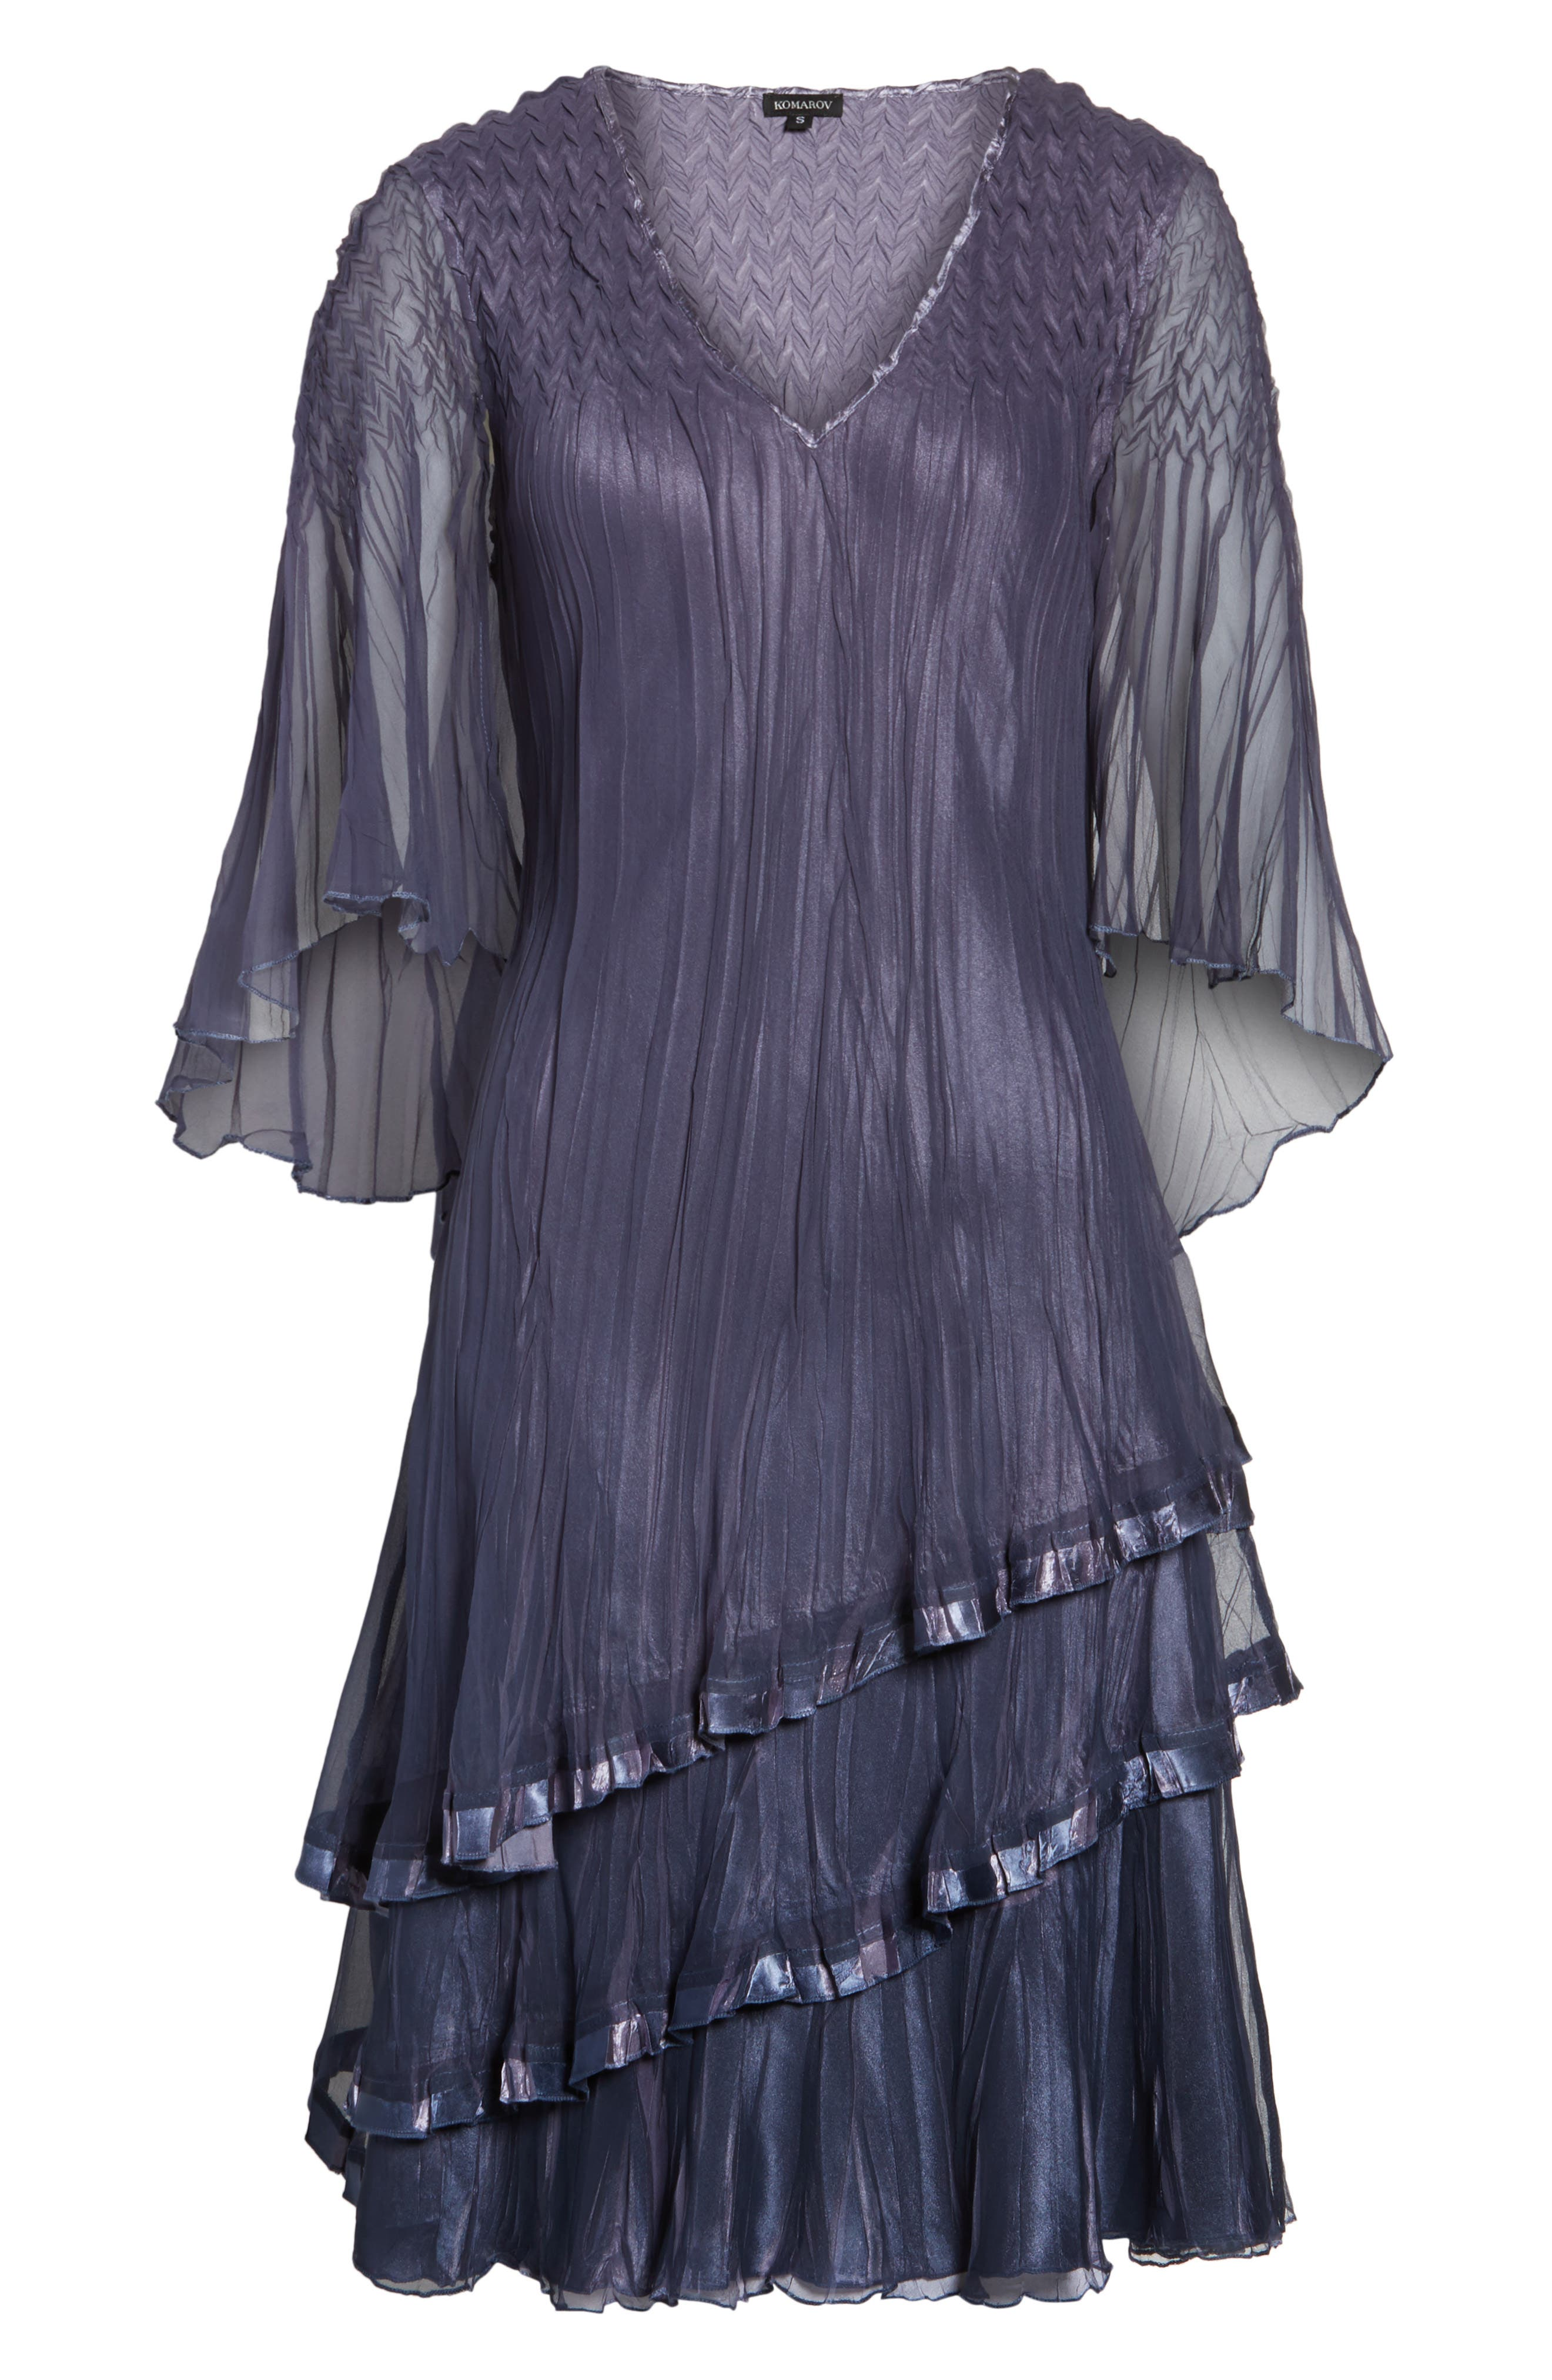 Cape Sleeve Tiered A-Line Dress,                             Alternate thumbnail 6, color,                             554